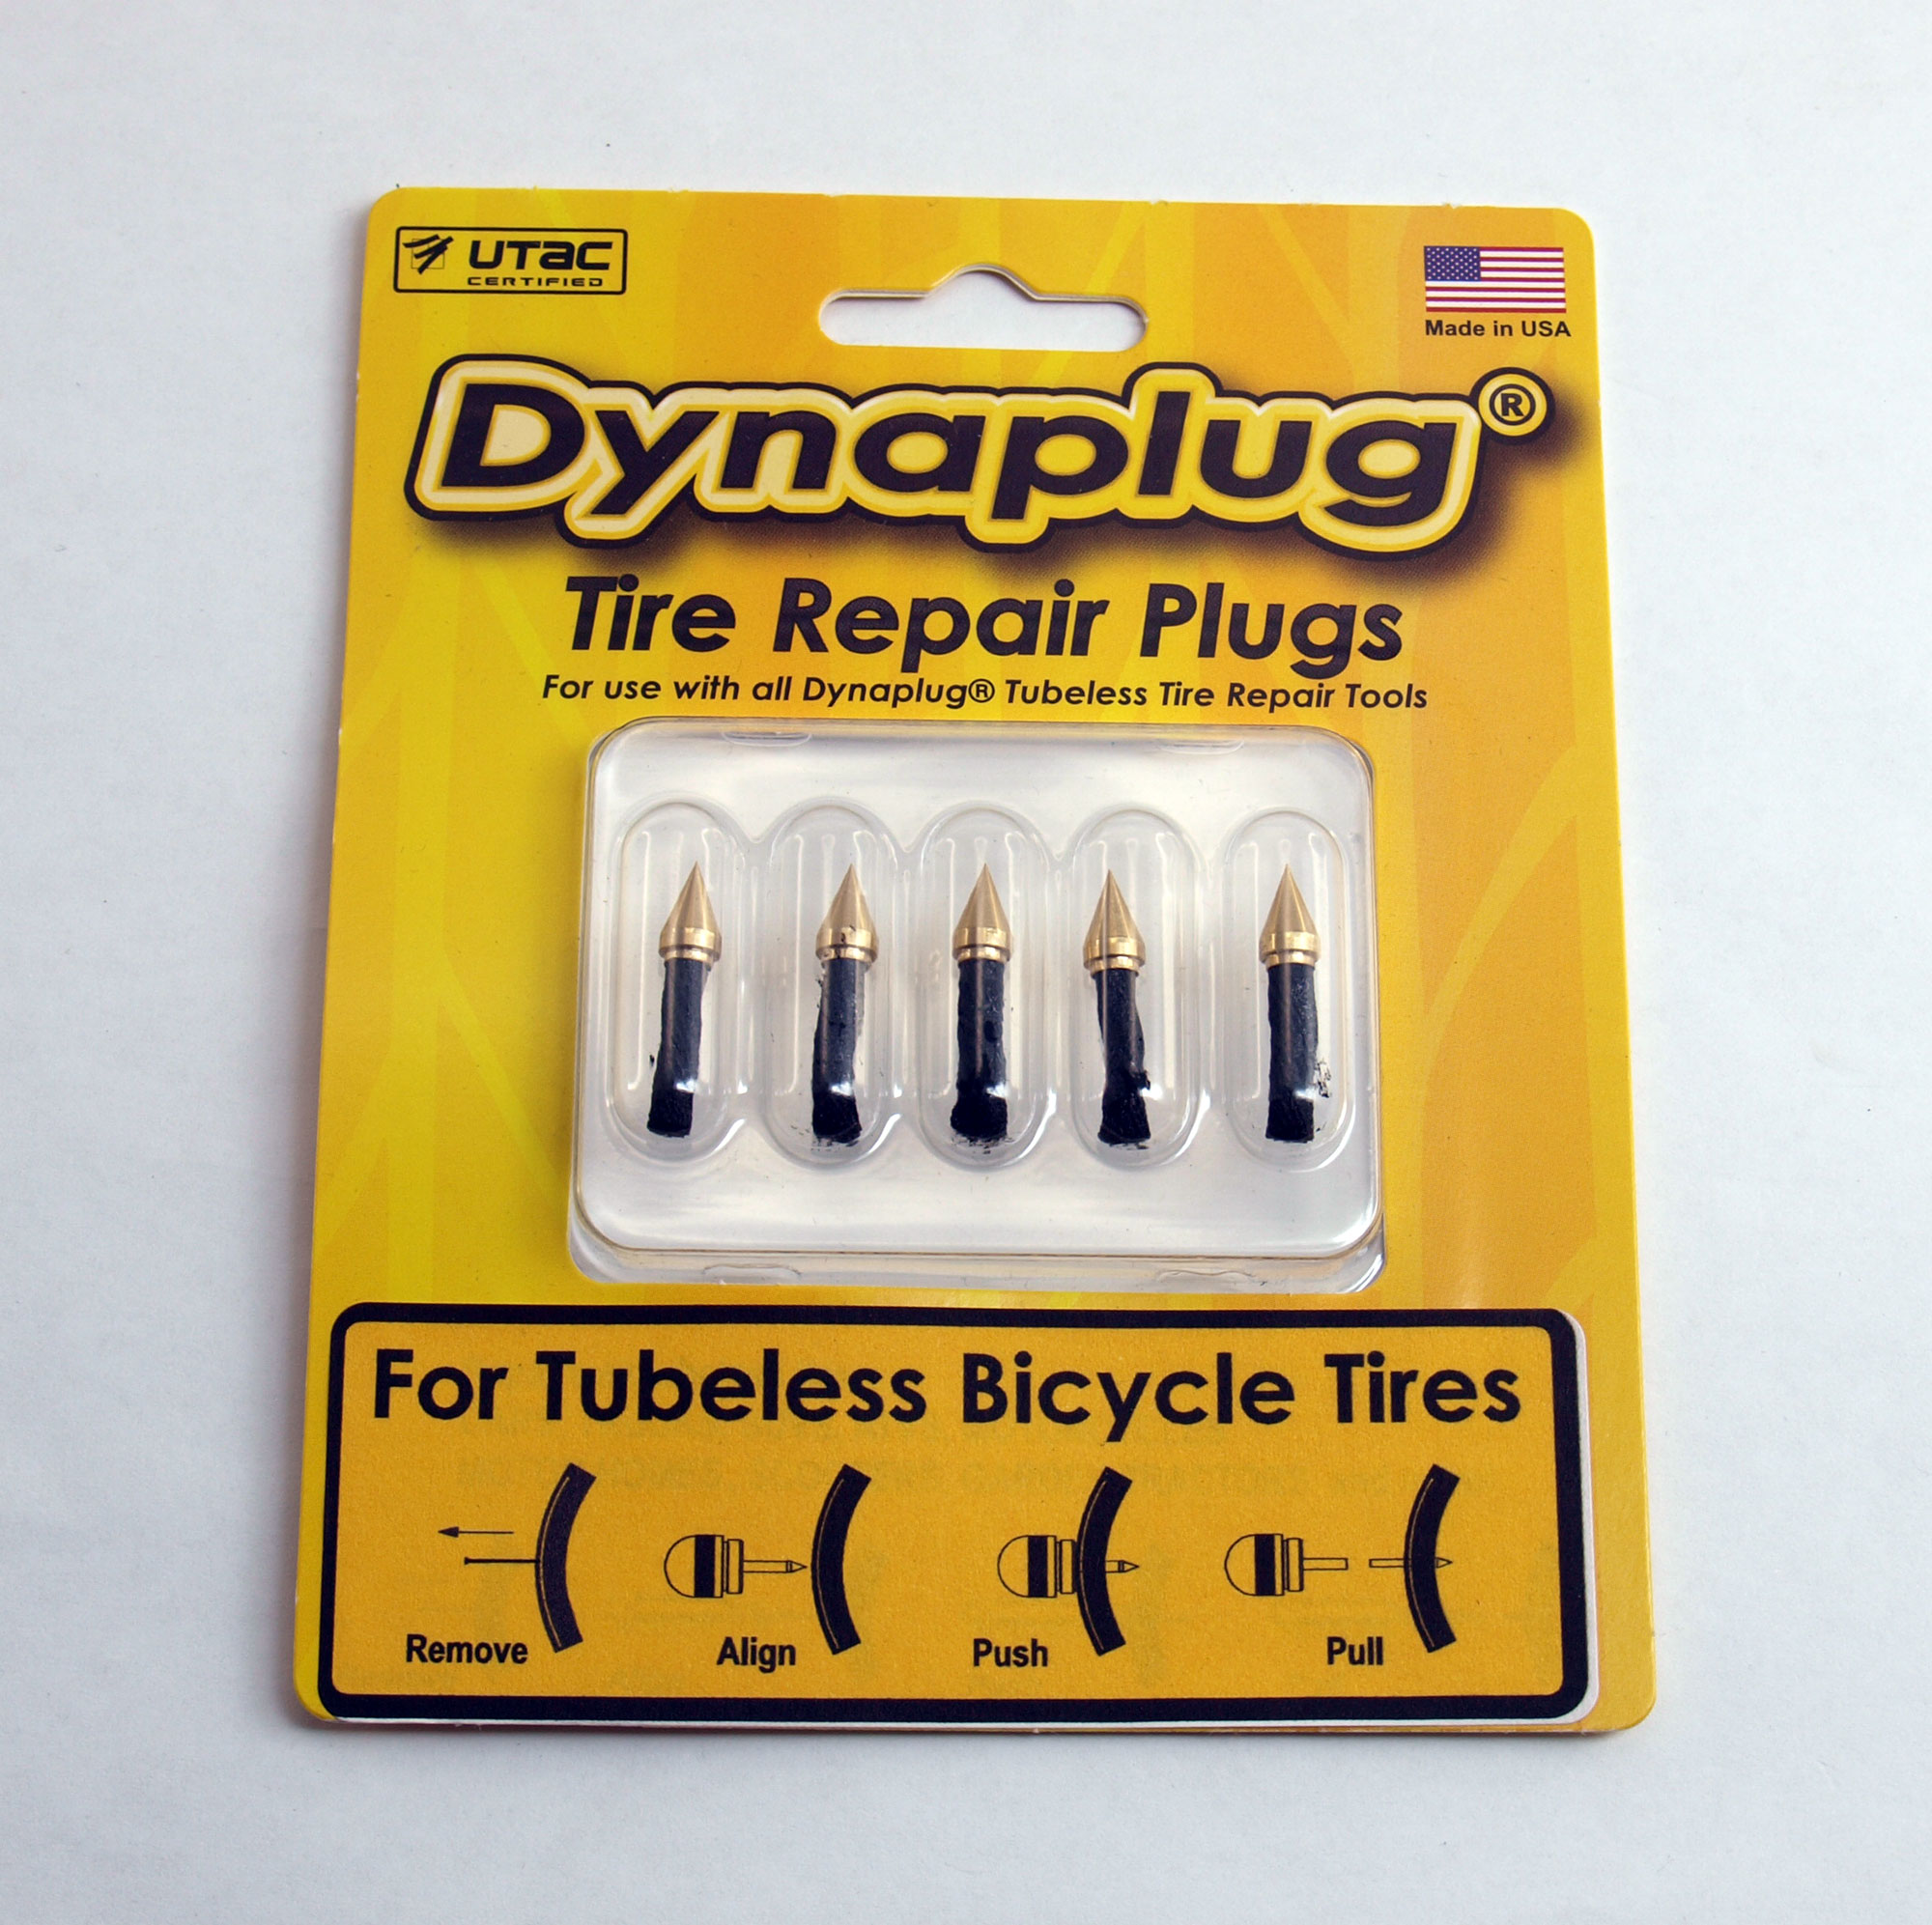 Dynaplug® Refill Pack for tubeless bicycle tyres